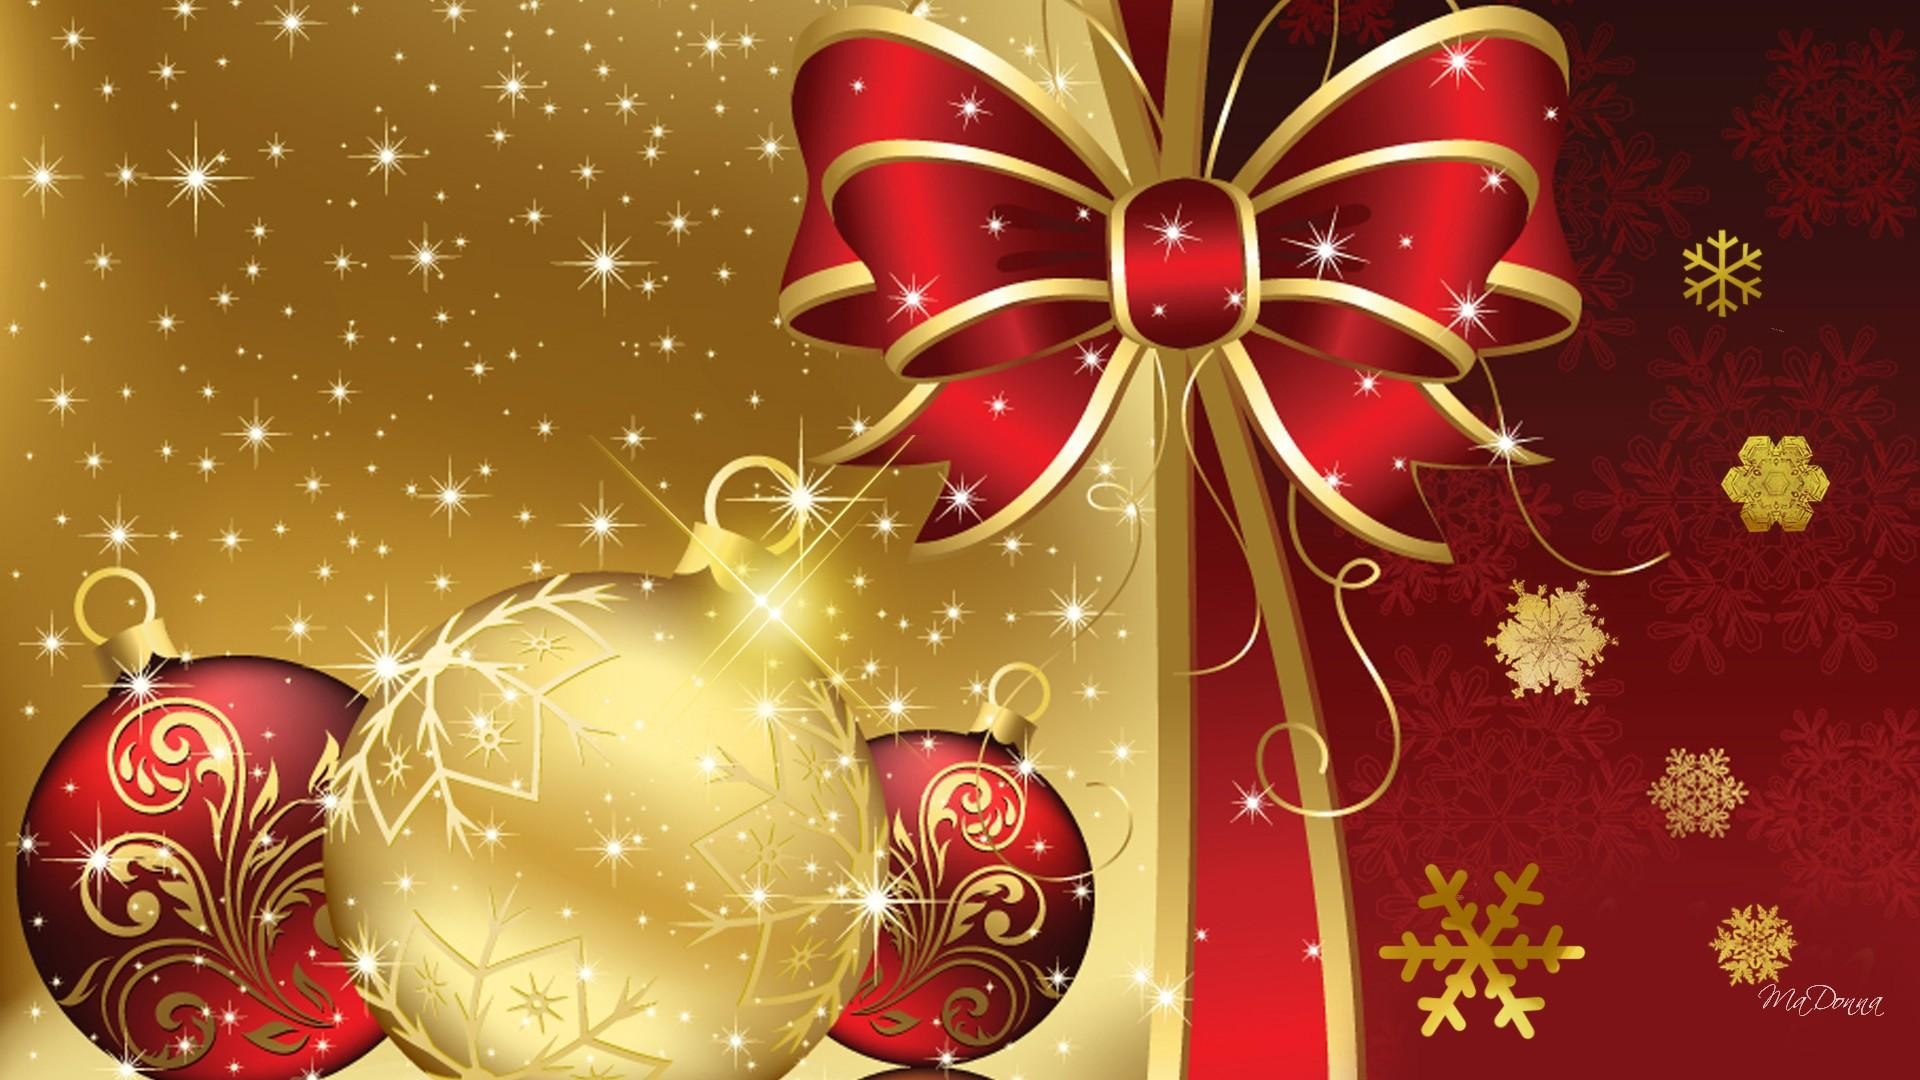 1920x1080 Merry Christmas Clipart. Merry